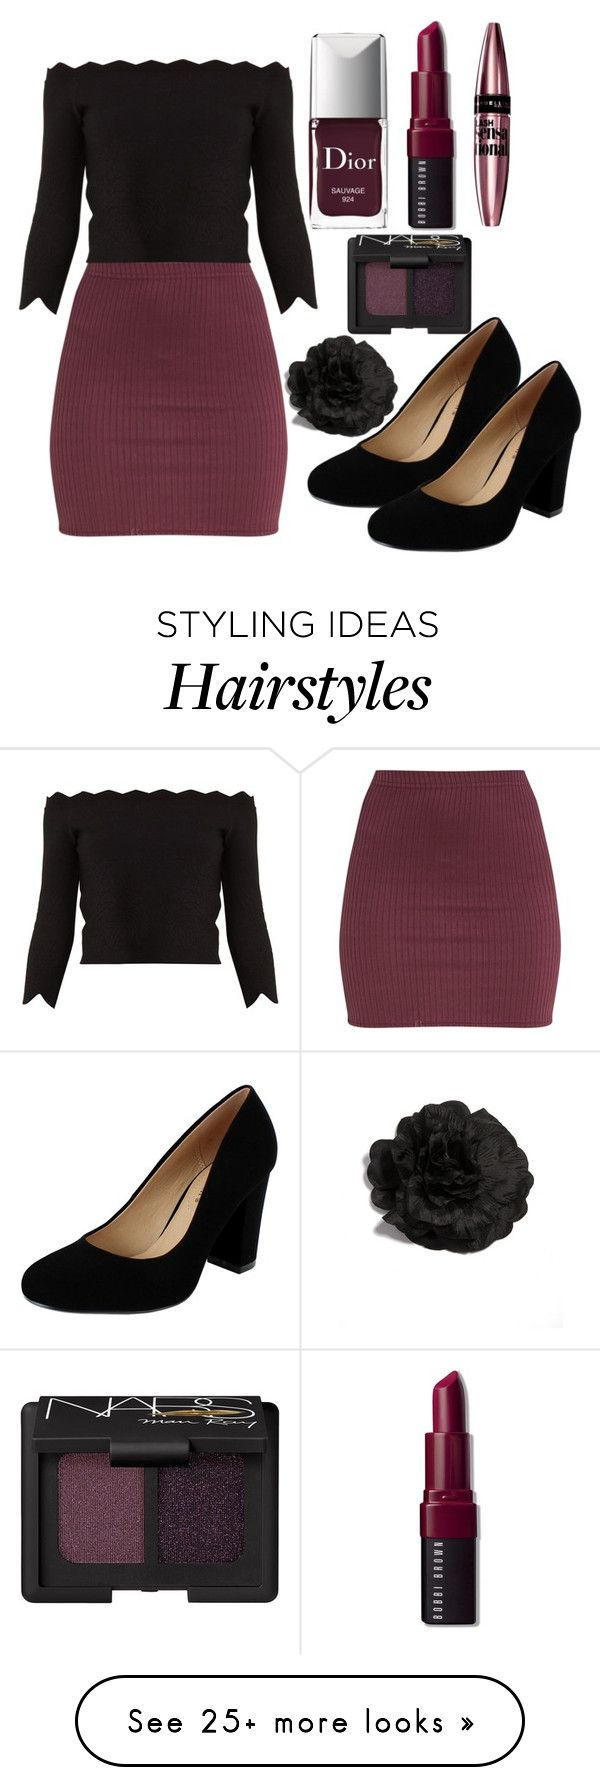 """""""Outfit #1817"""" by ivanna1920 on Polyvore featuring Alexander McQueen, Classified, Christian Dior, Bobbi Brown Cosmetics, Maybelline and NARS Cosmetics"""